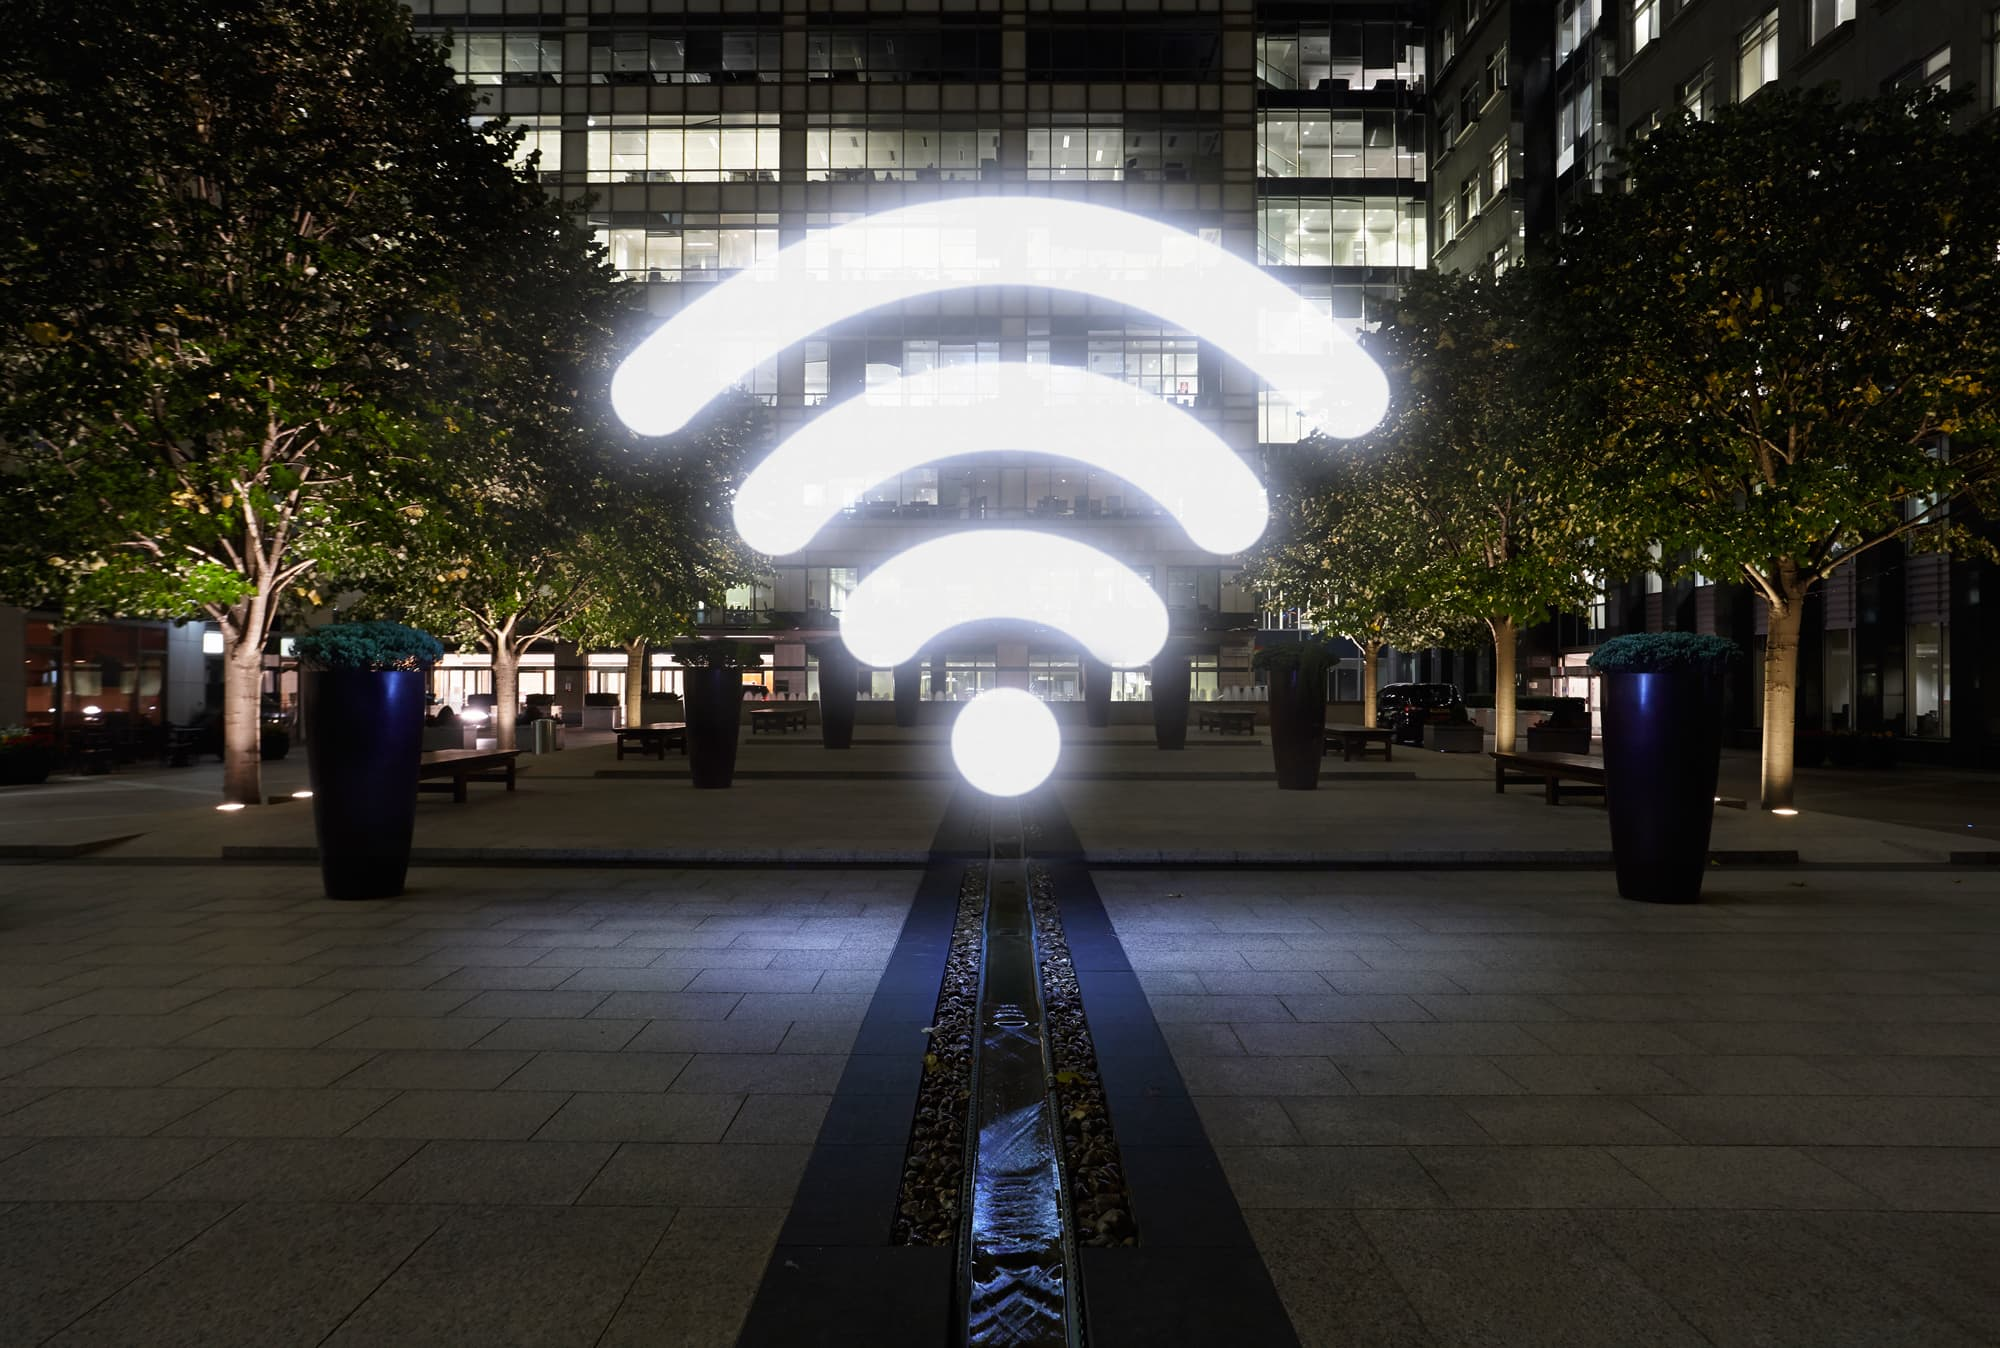 The future of connectivity: Introducing Wi-Fi 6